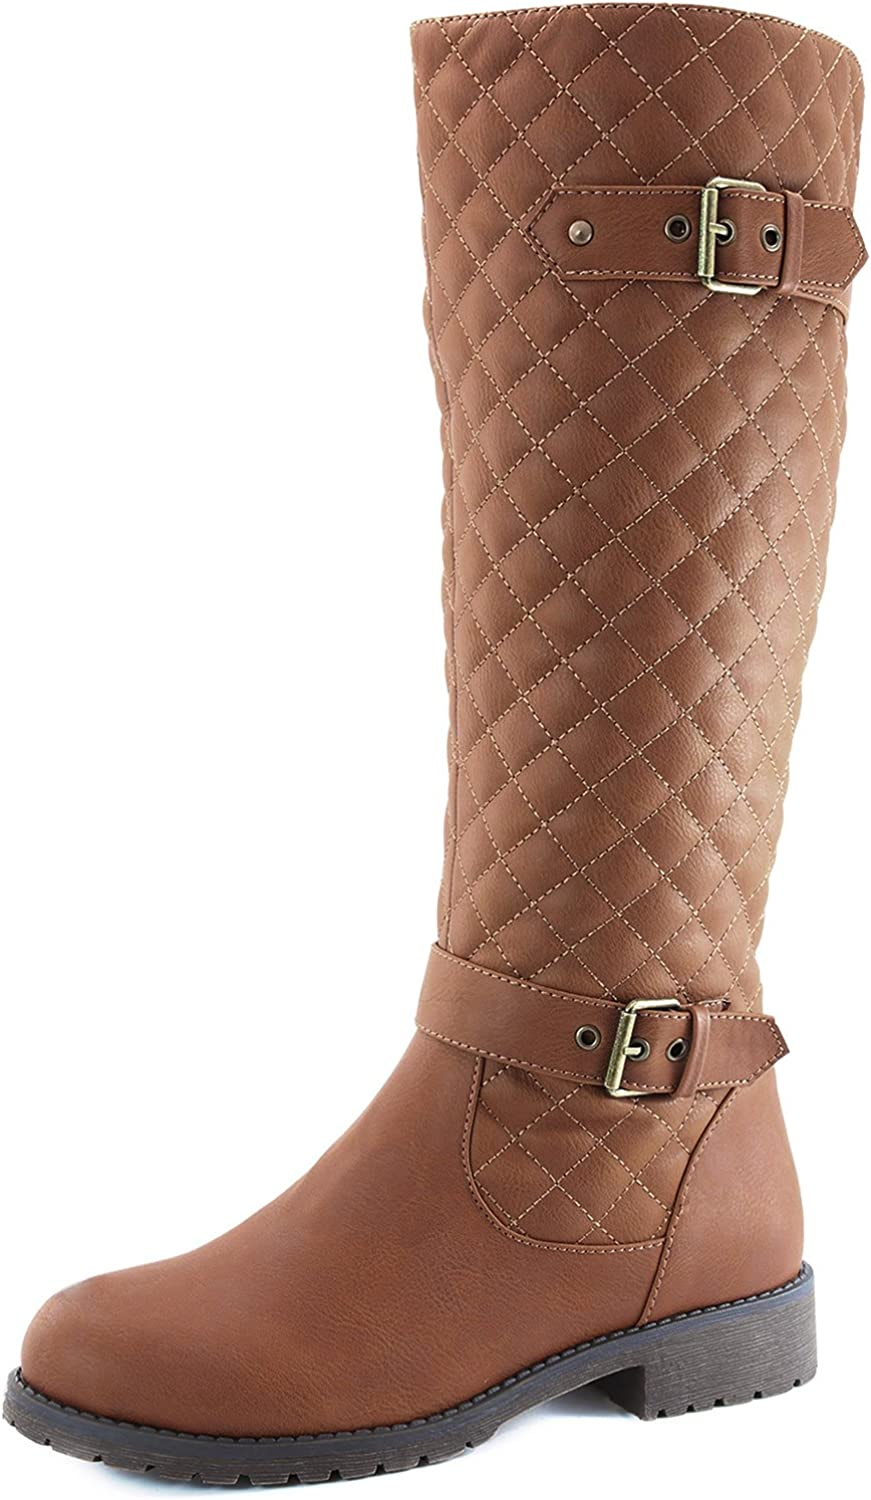 DailyShoes Women's Quilted Round Toe Knee High Combat Rider Mid Calf with Side Pocket